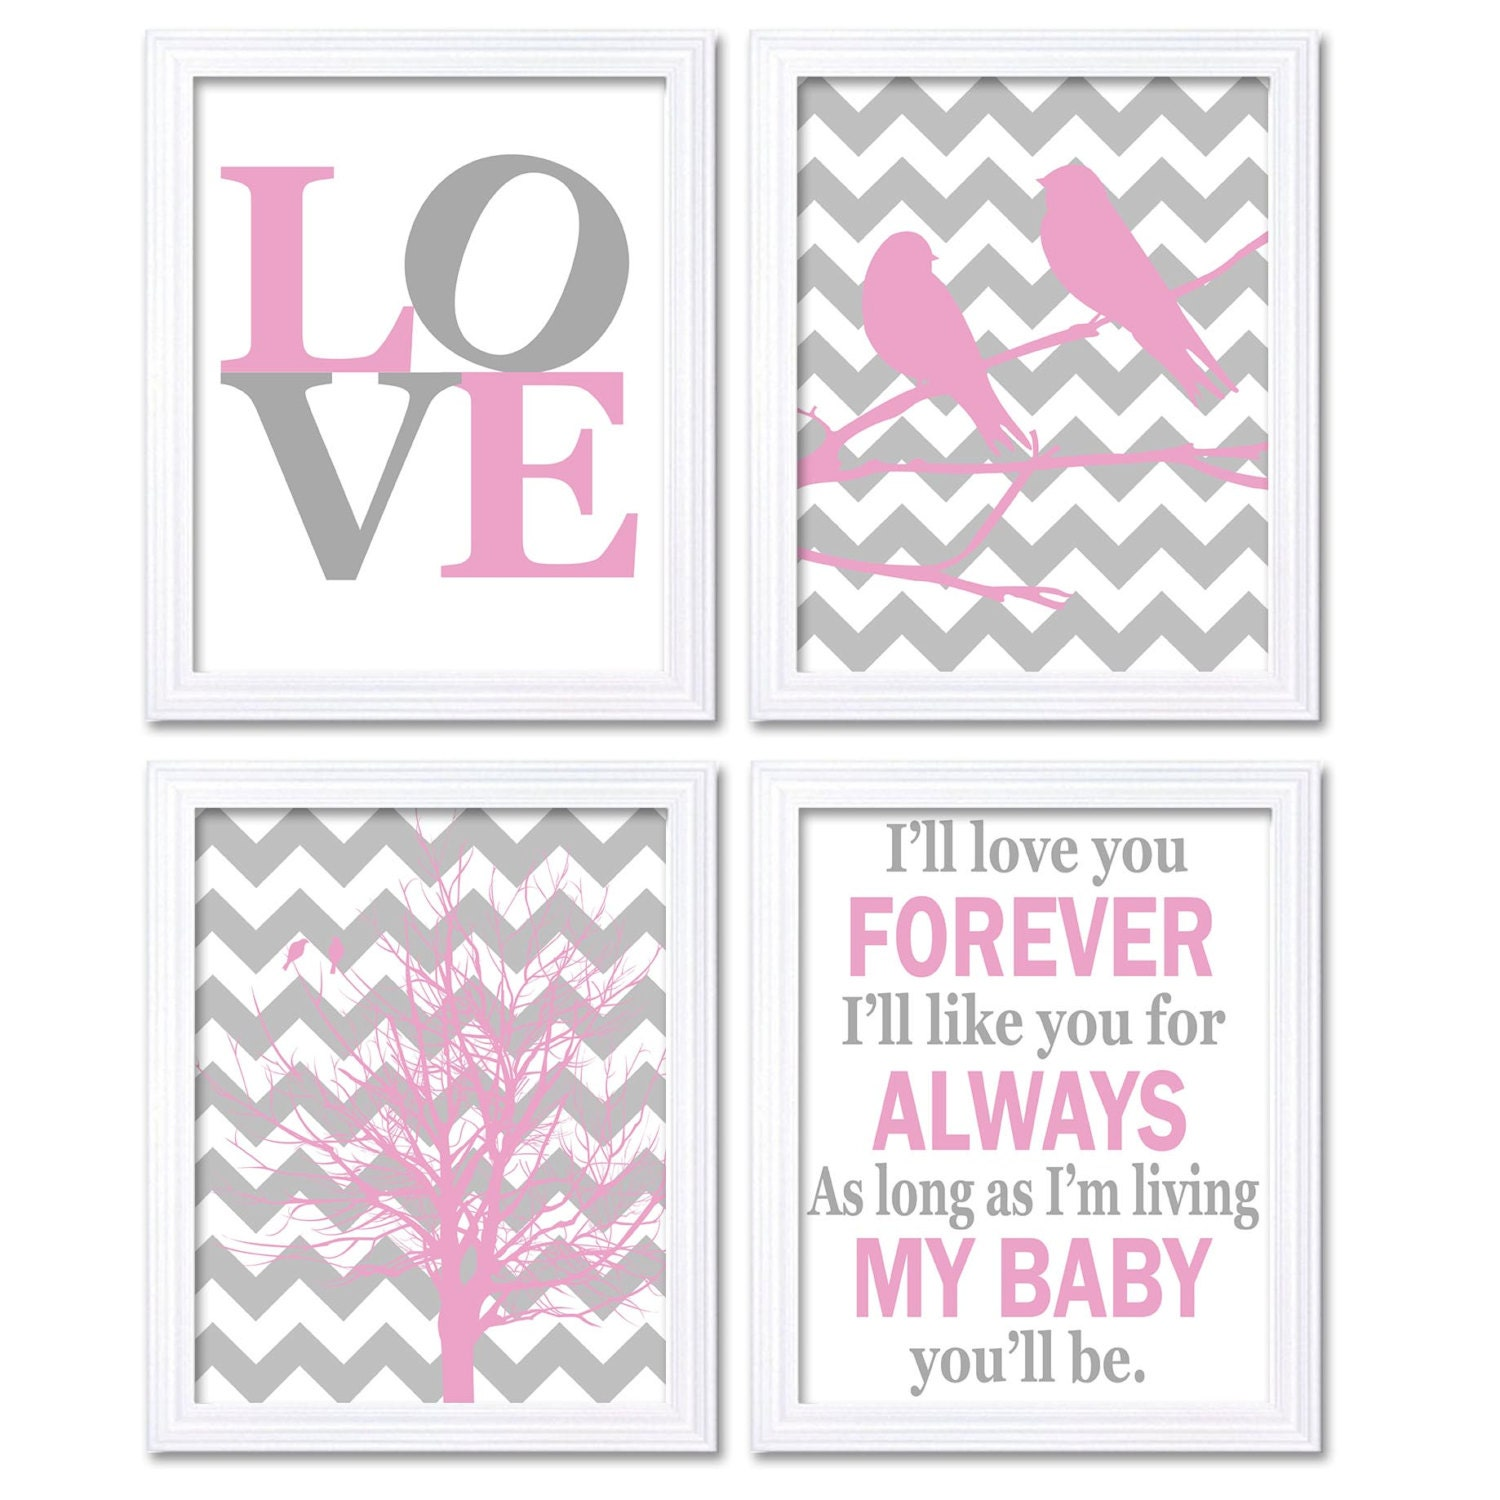 Nursery Art Pink Grey Wall Decor Ill Love You Forever Set of 4 Prints Baby LOVE Child Kids Girl Wall